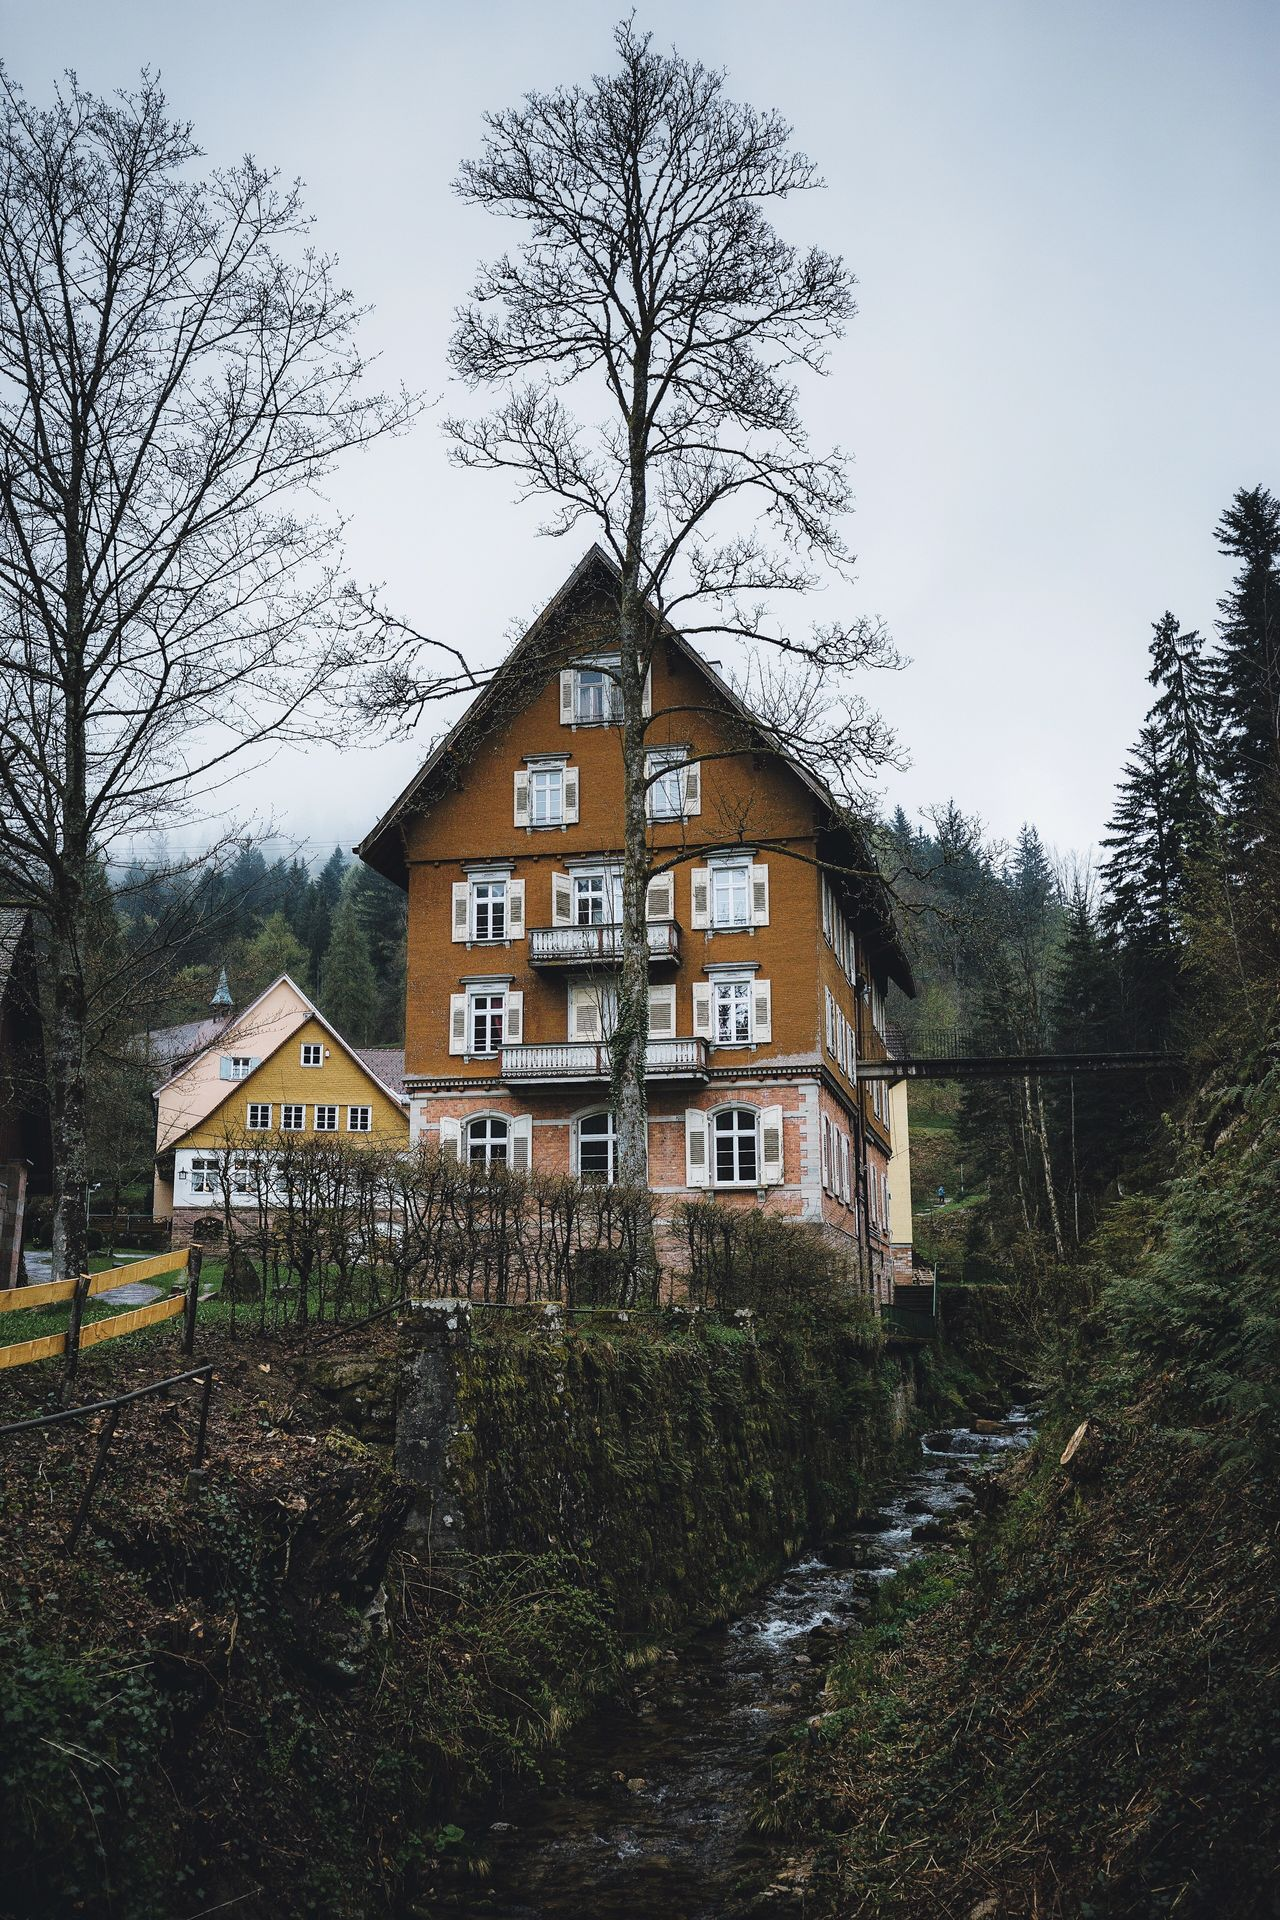 Black Forest Germany Tree Architecture Building Exterior Built Structure Sky No People House Outdoors Nature Bare Tree Day